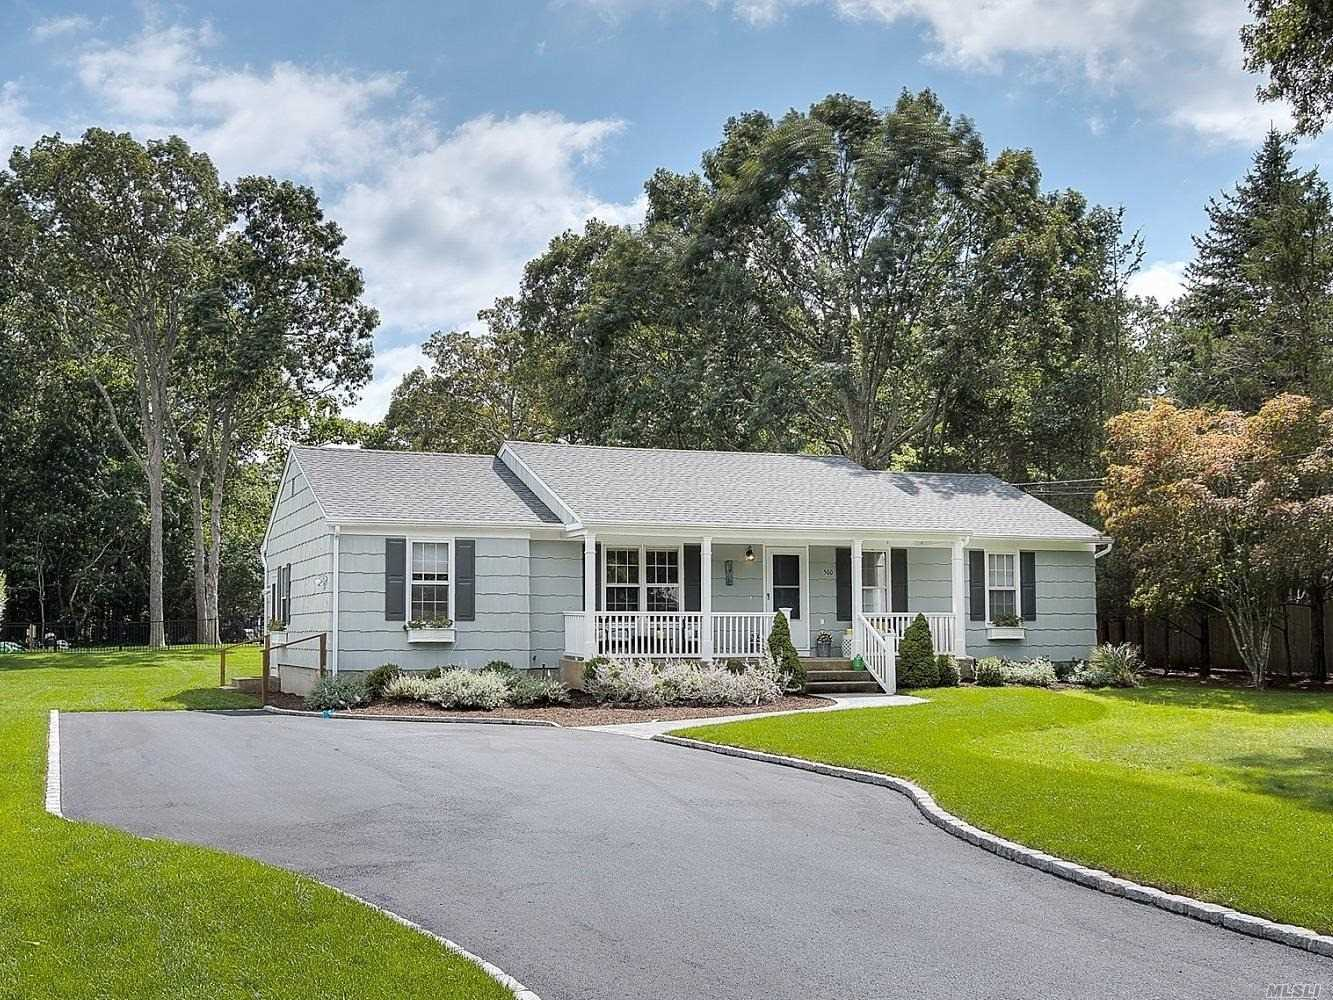 Fantastic Location In Mattituck! Charming Ranch Near The Bay Has Had Many Recent Updates, Including A Heated In-Ground Pool, Beautifully Landscaped Grounds, Slate Patio, Outdoor Shower, Stainless Appliances In The Kitchen, Cac, Gas-Heat And A New Driveway. Bright And Open Kitchen With Sliders Leading To Your Very Own Backyard Paradise.